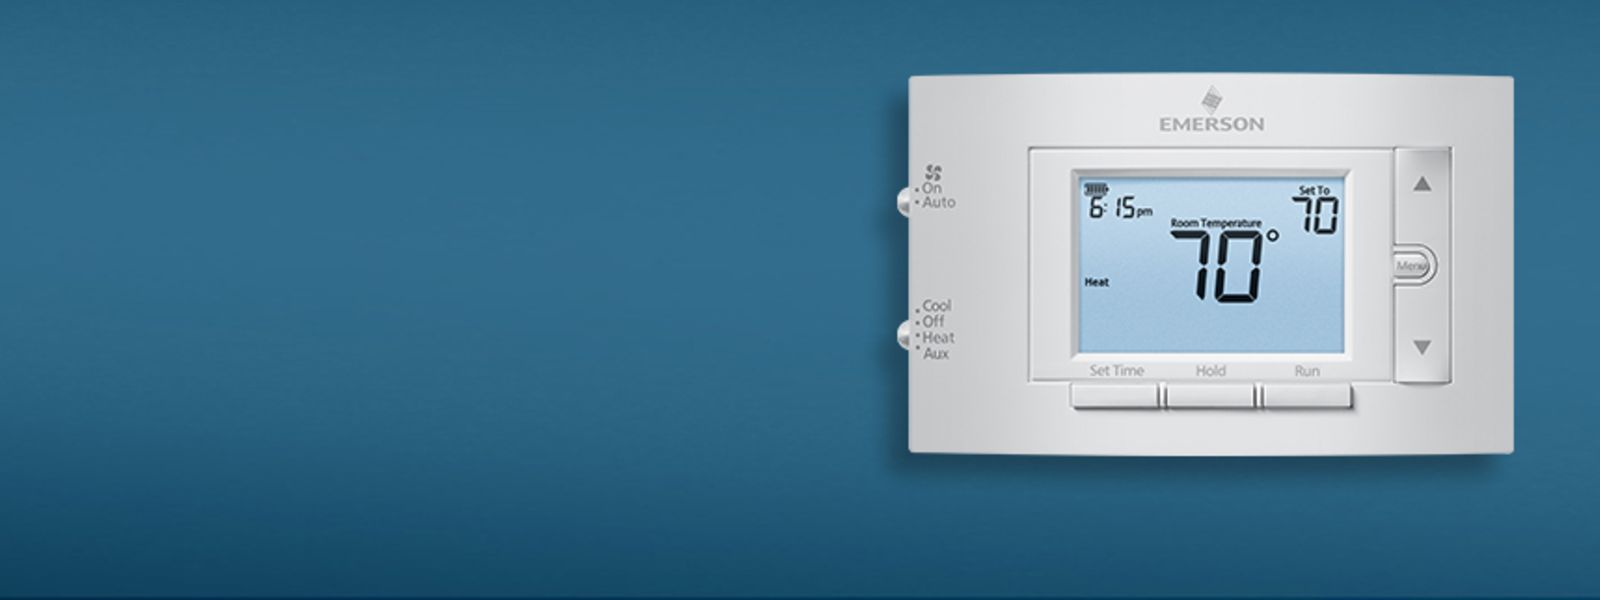 Emerson 80 Series Thermostats   Fit Matters   Emerson